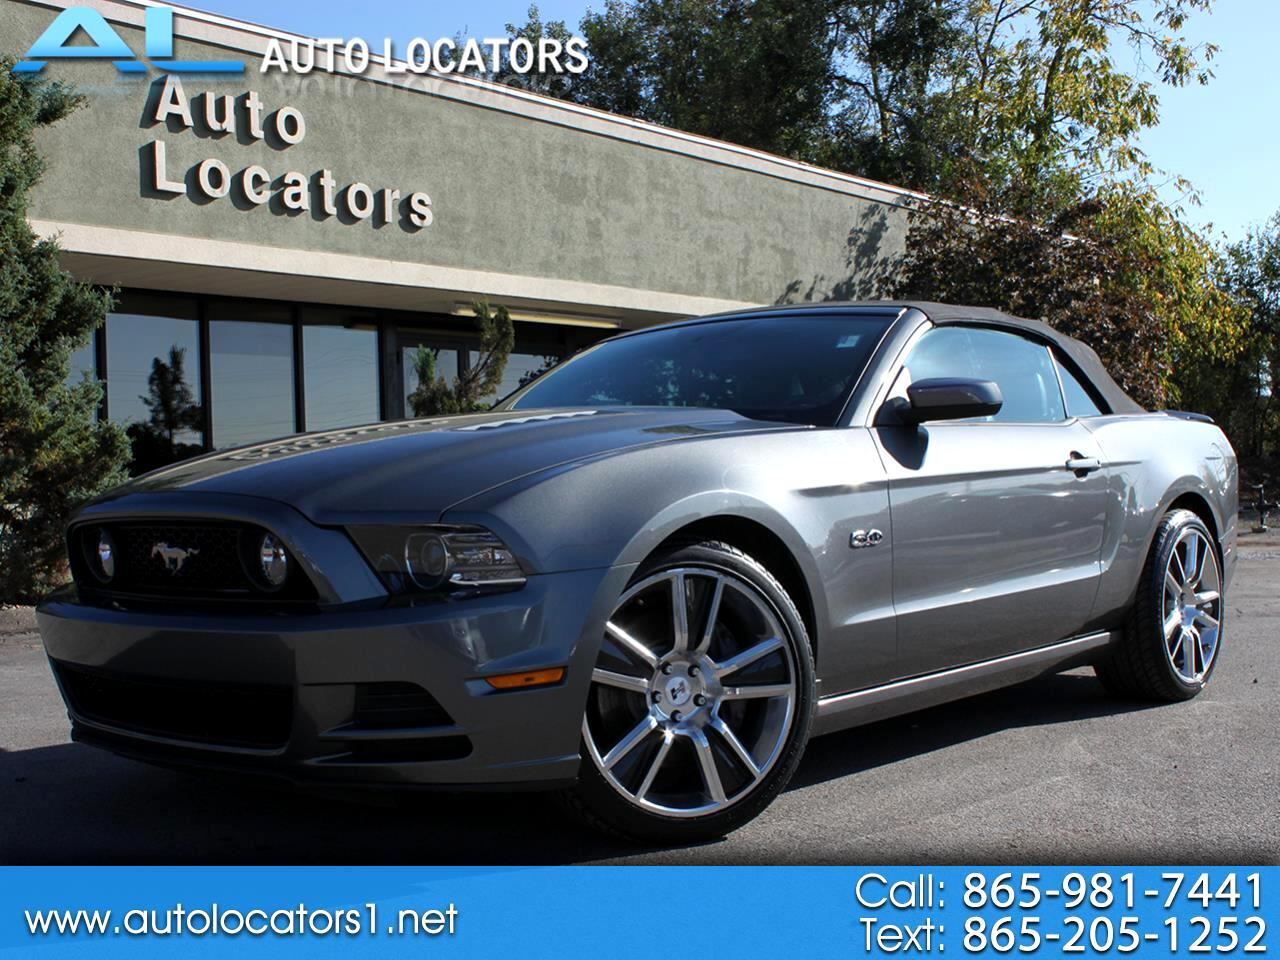 Ford Mustang 2dr Conv GT 2013